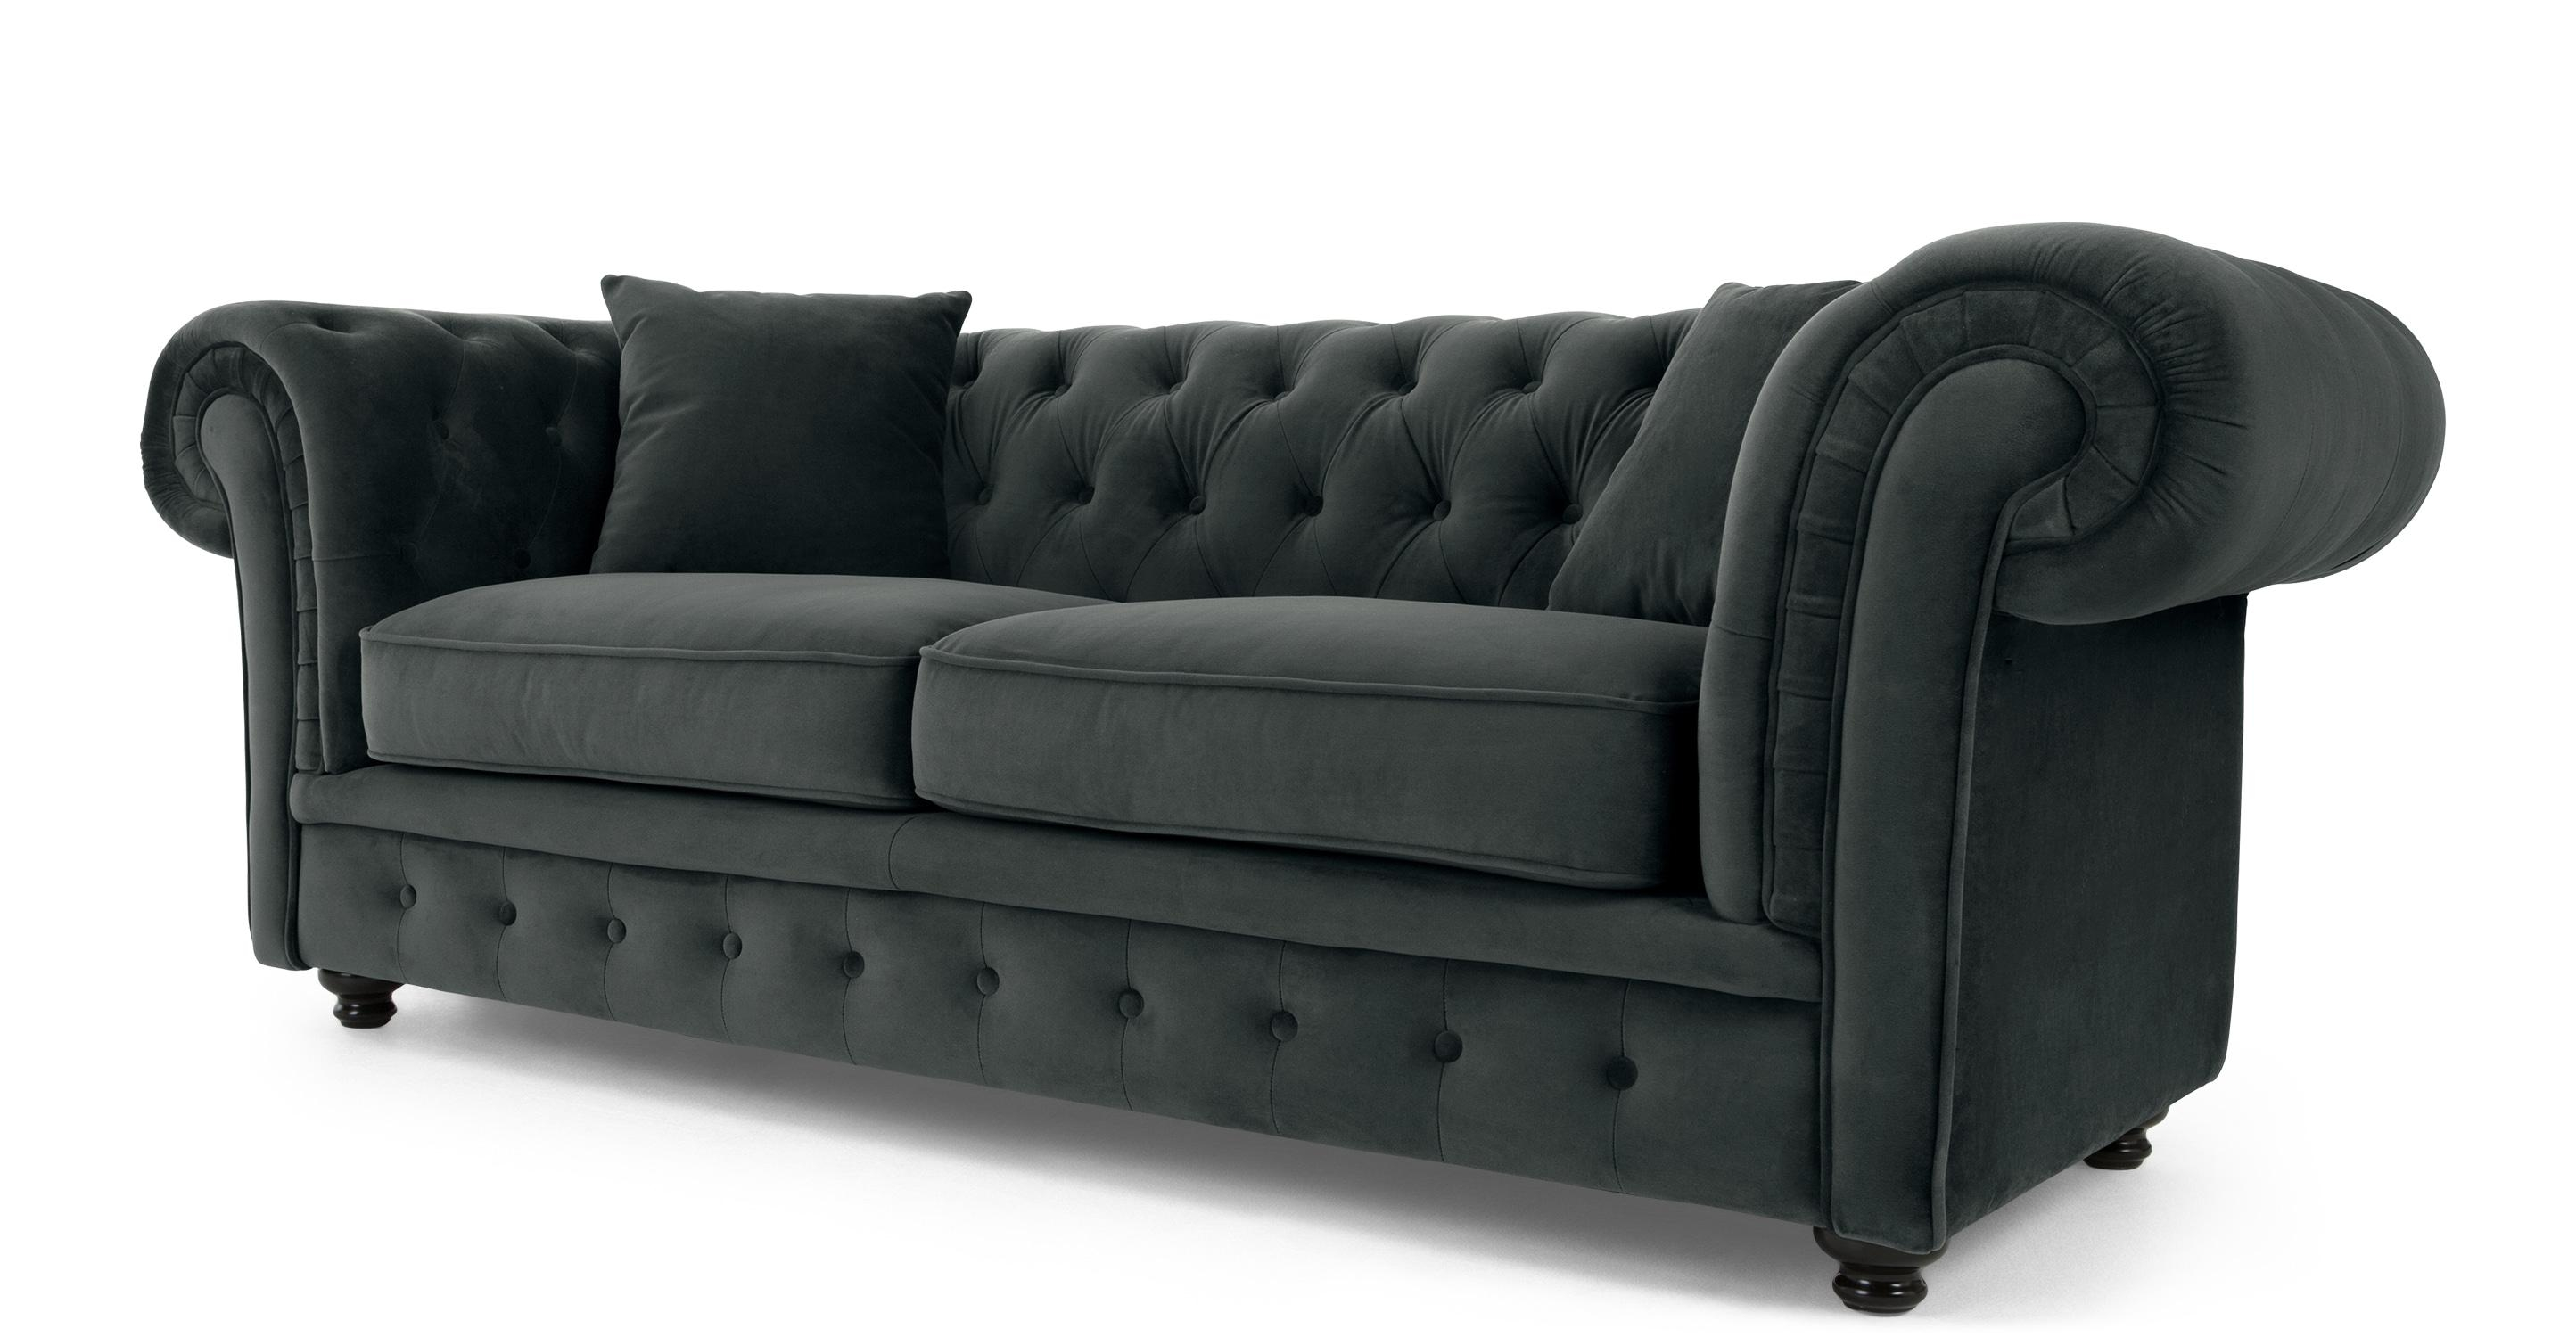 Sofas : Fabulous Grey Tufted Sofa Blue Grey Sofa Leather Couches With Blue Tufted Sofas (View 22 of 22)